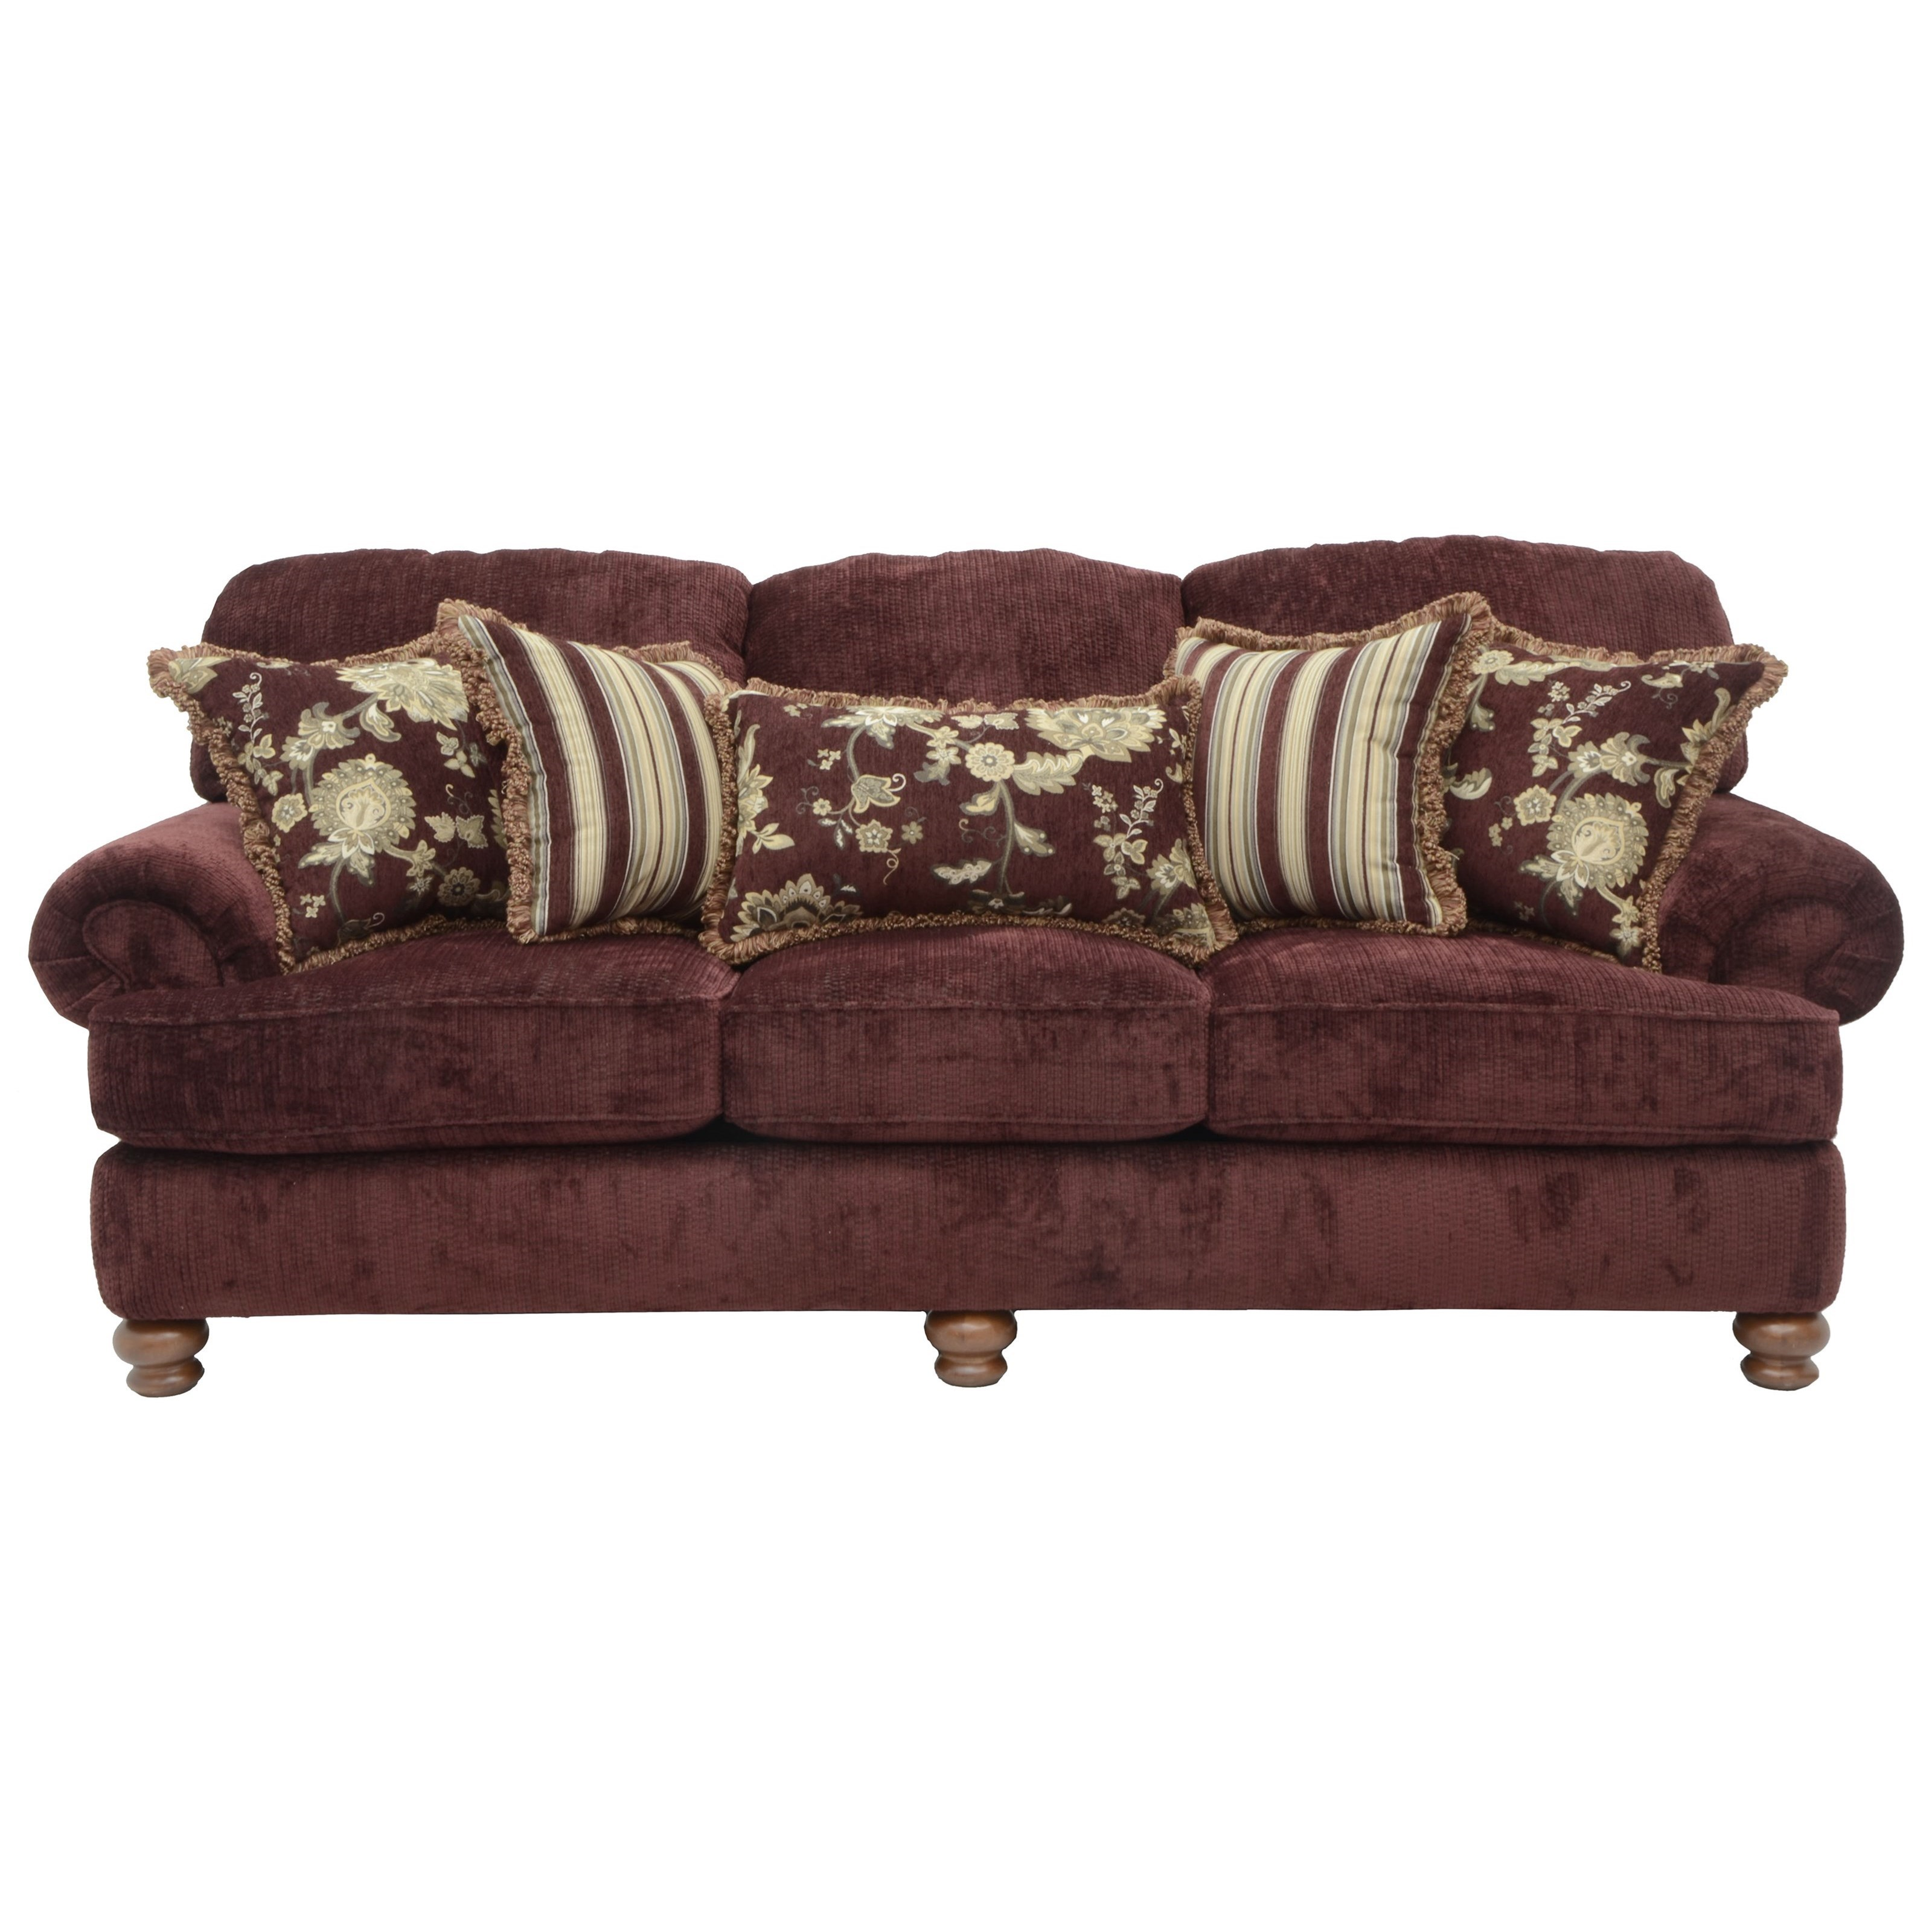 Jackson Furniture Belmont Sofa - Item Number: 4347-03-Belmont-Claret